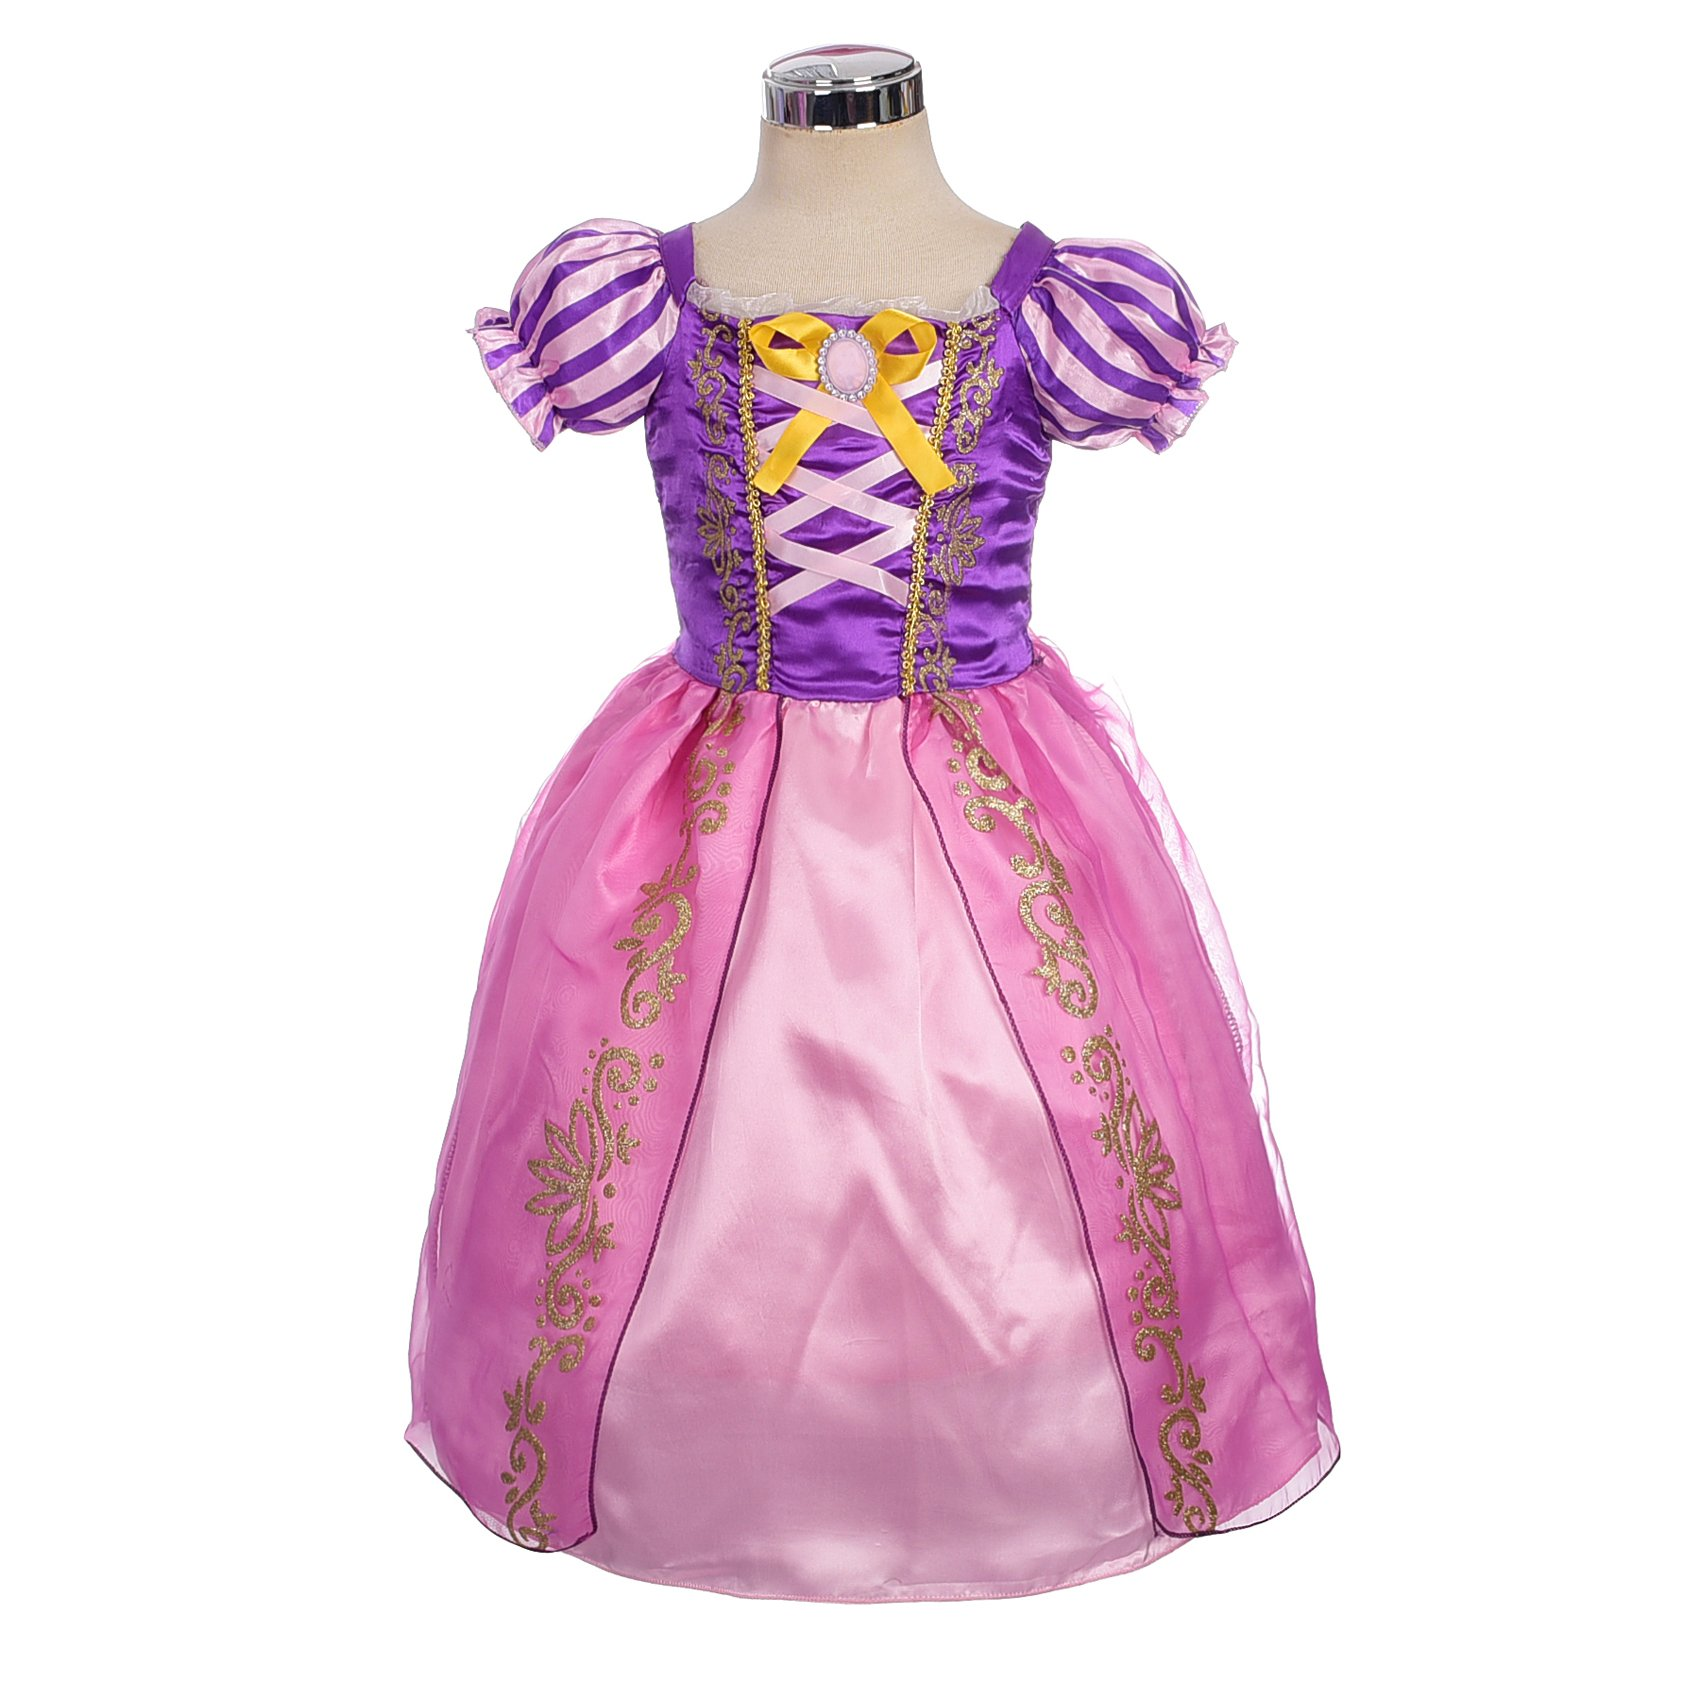 Dressy Daisy Girls' Princess Rapunzel Dress up Fairy Tales Costume Cosplay Party Size 4T